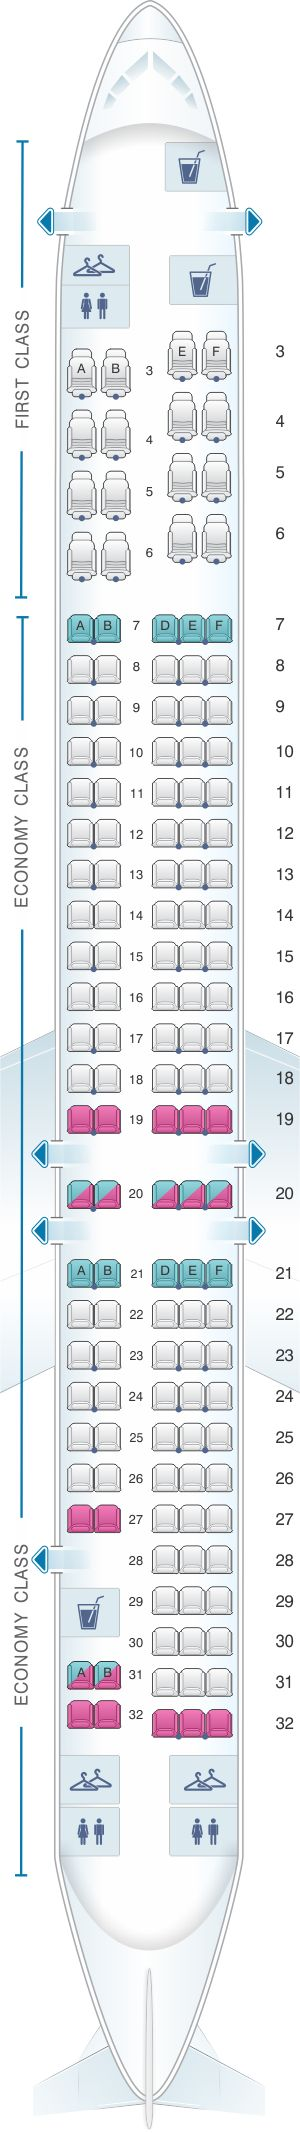 Seat map for American Airlines McDonnell Douglas MD 80 ...